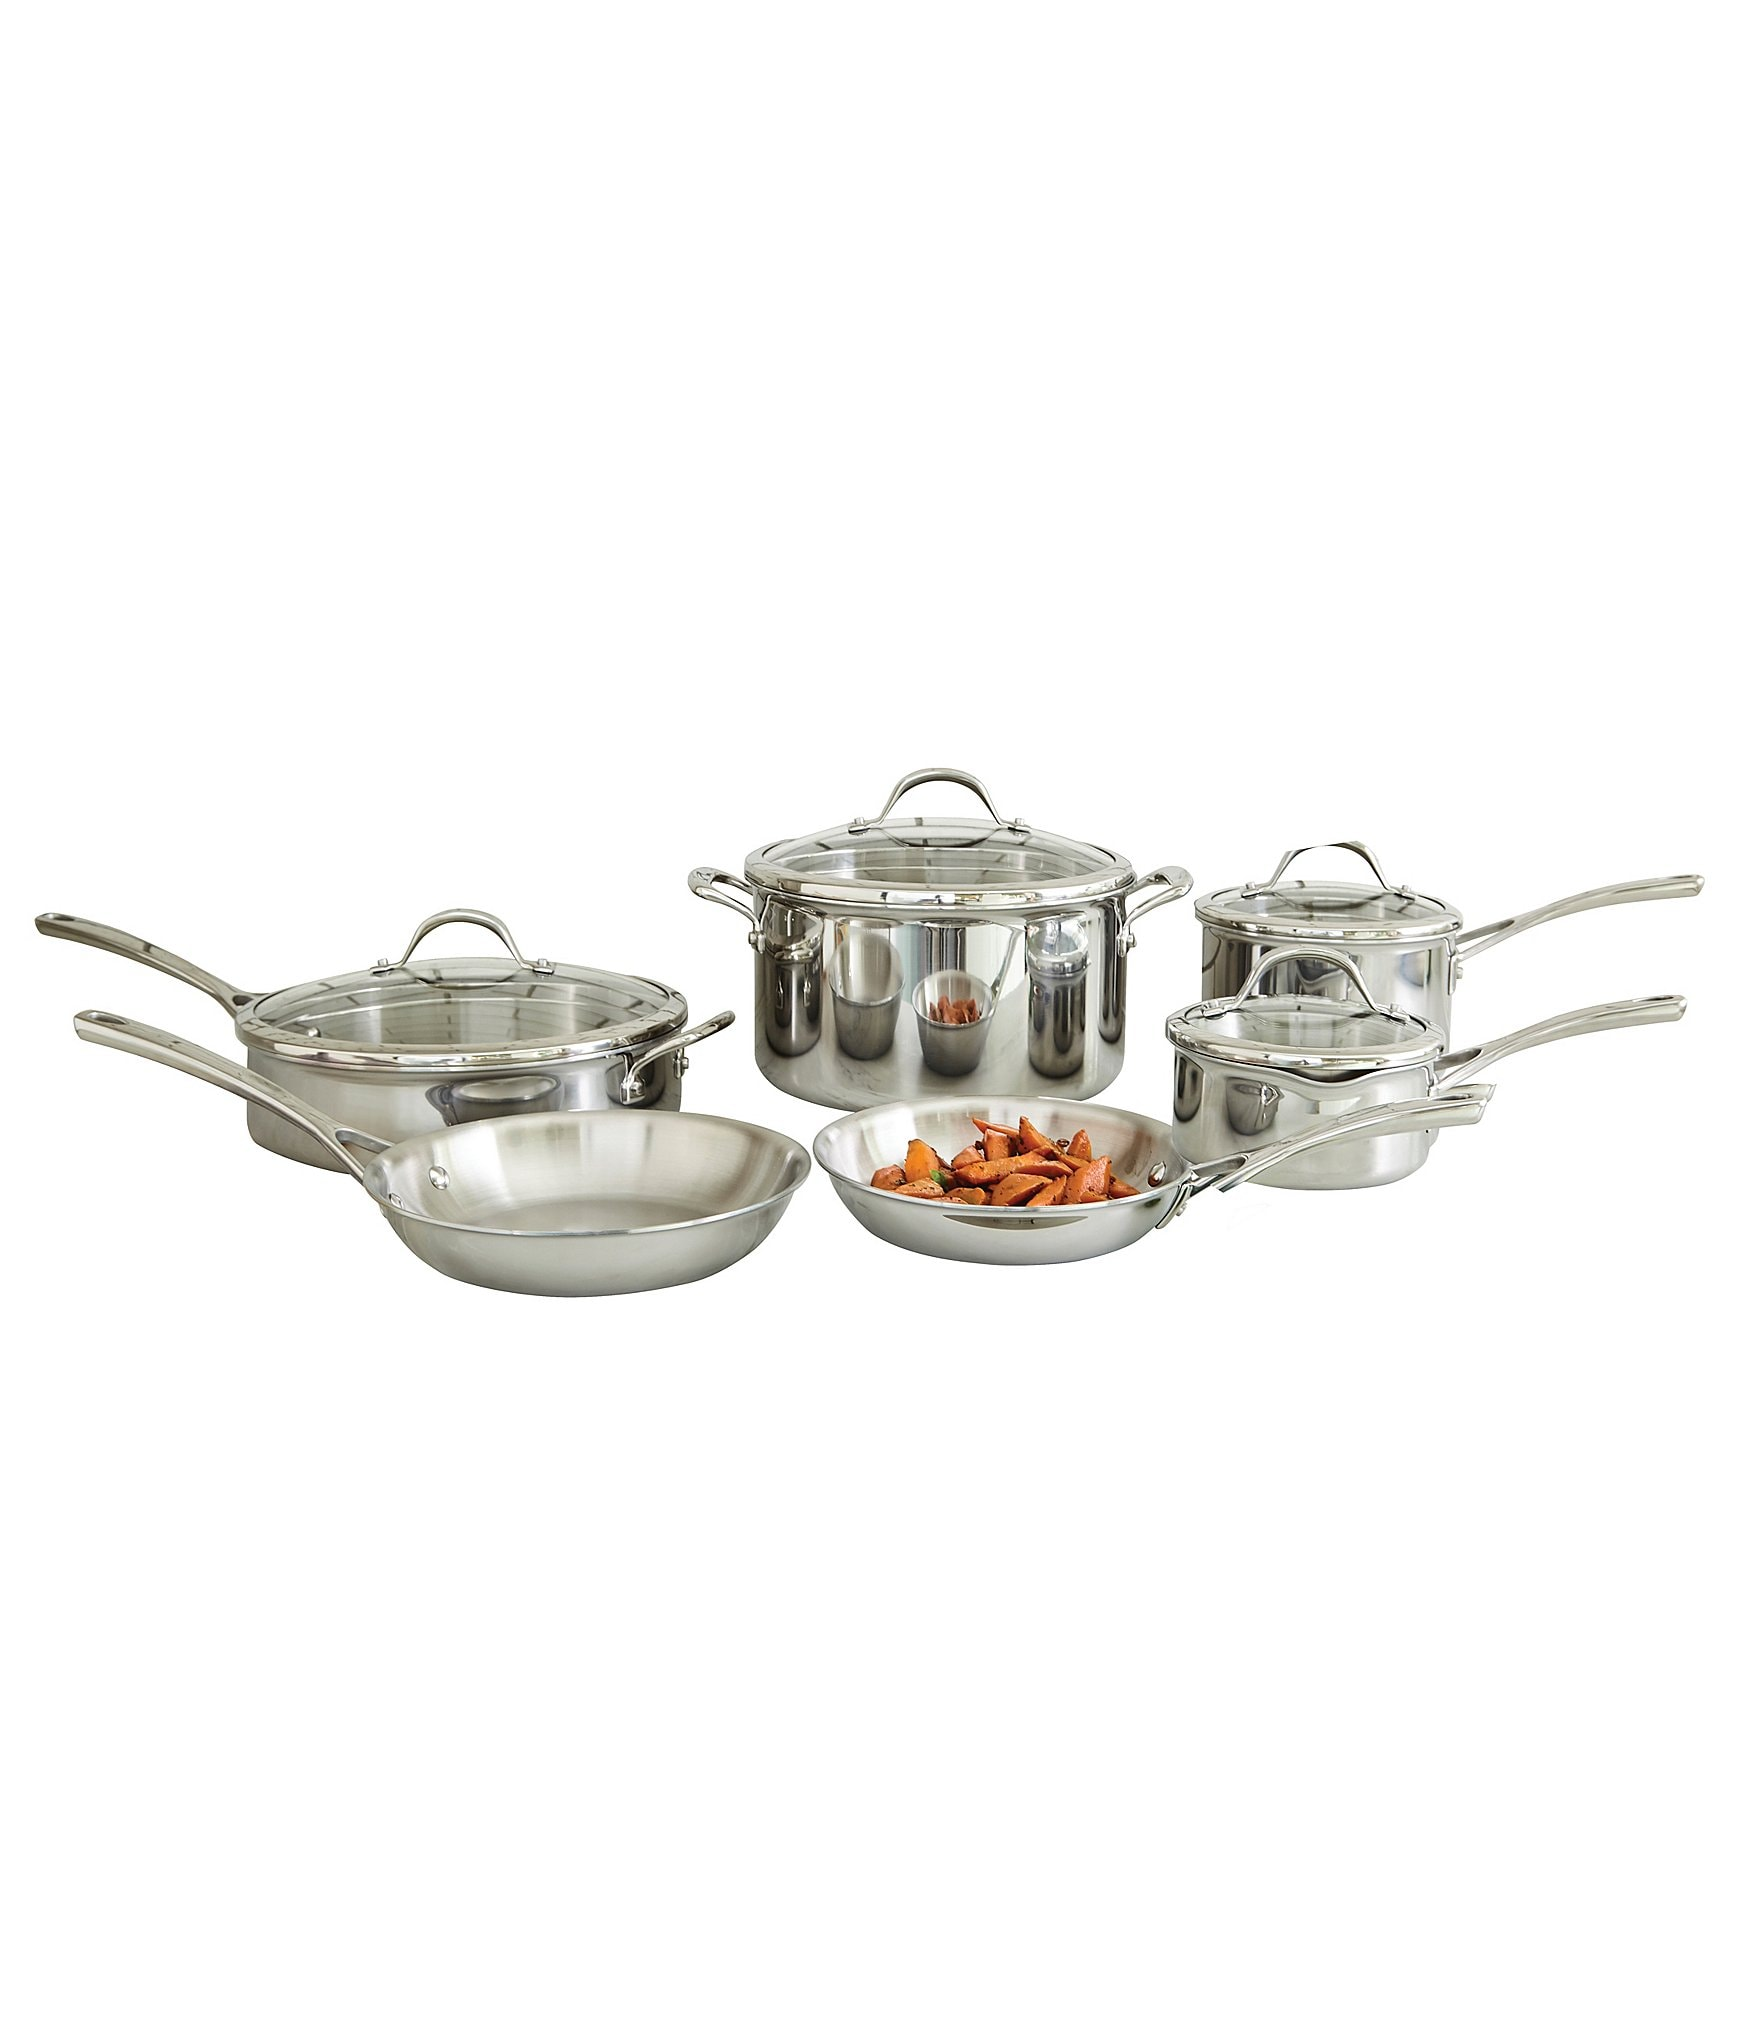 Southern Living Tri Ply Clad Stainless Steel 10 Piece